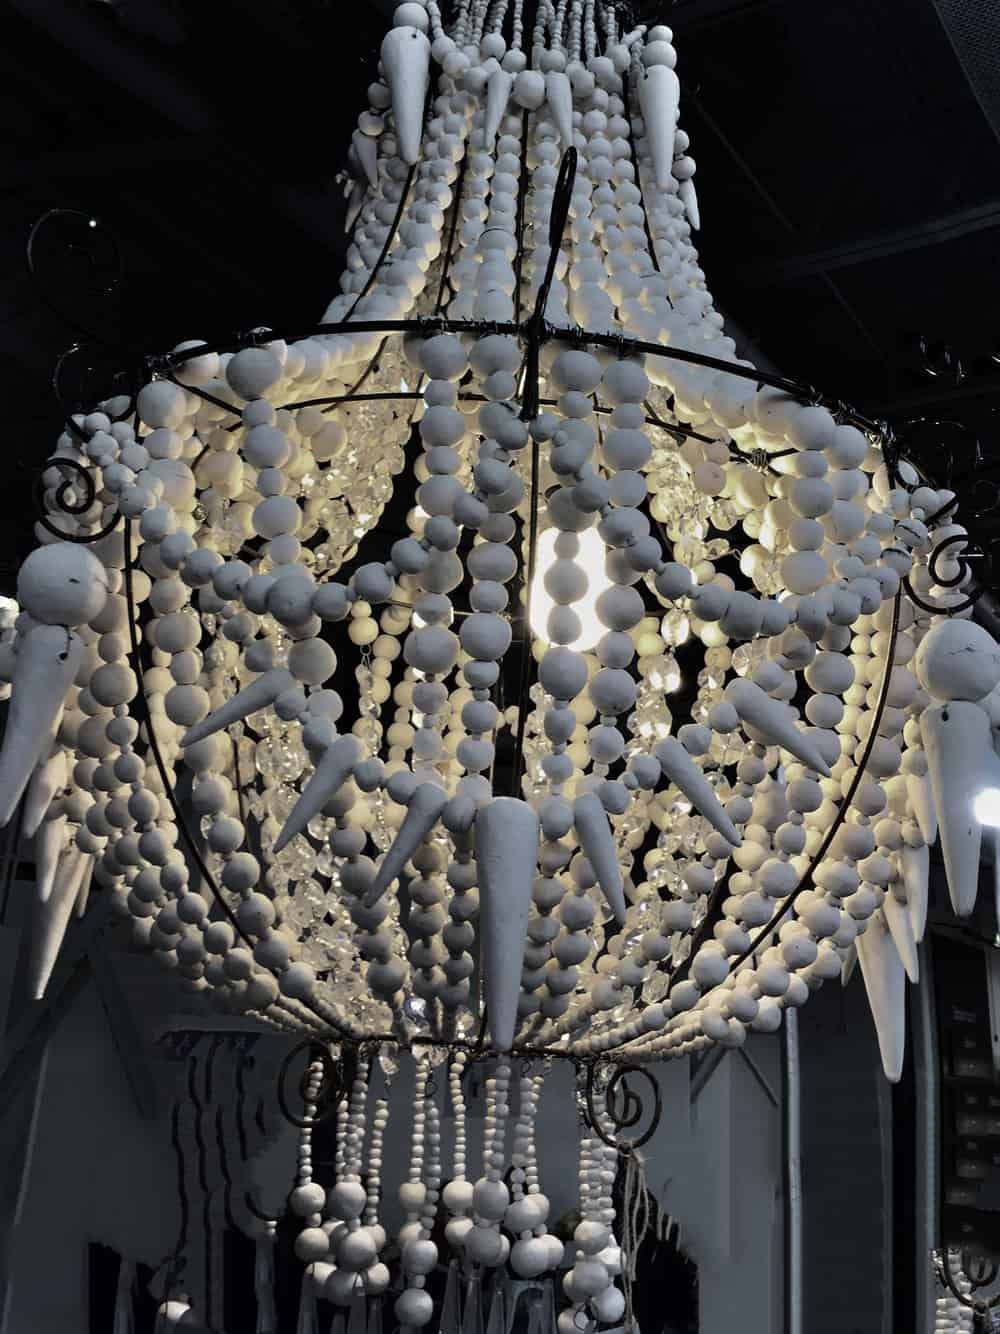 dining cheap crystal of black lantern full lighting big chandelier white pewter chandeliers foyer brass light size height room fixtures modern silver ball sales kitchen near for and staircase me staircases